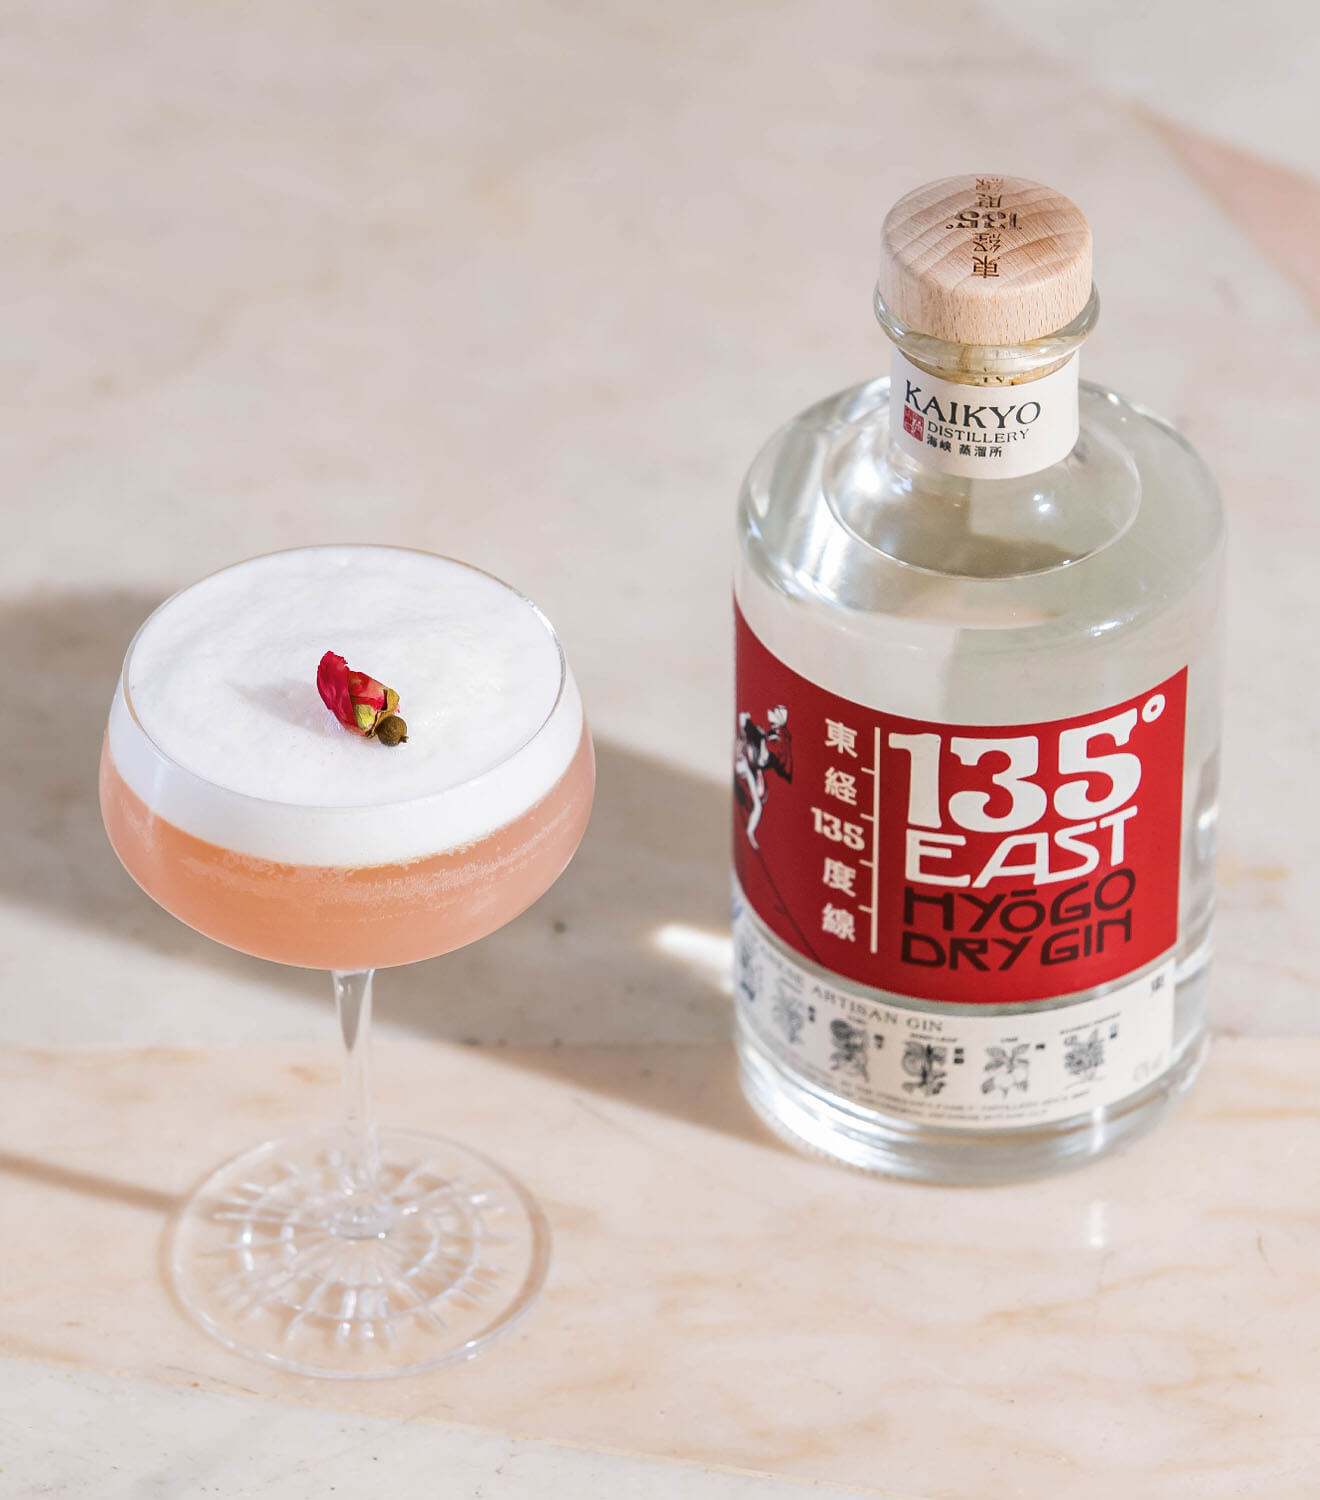 Longitude Line, cocktail and bottle, 135 east gin